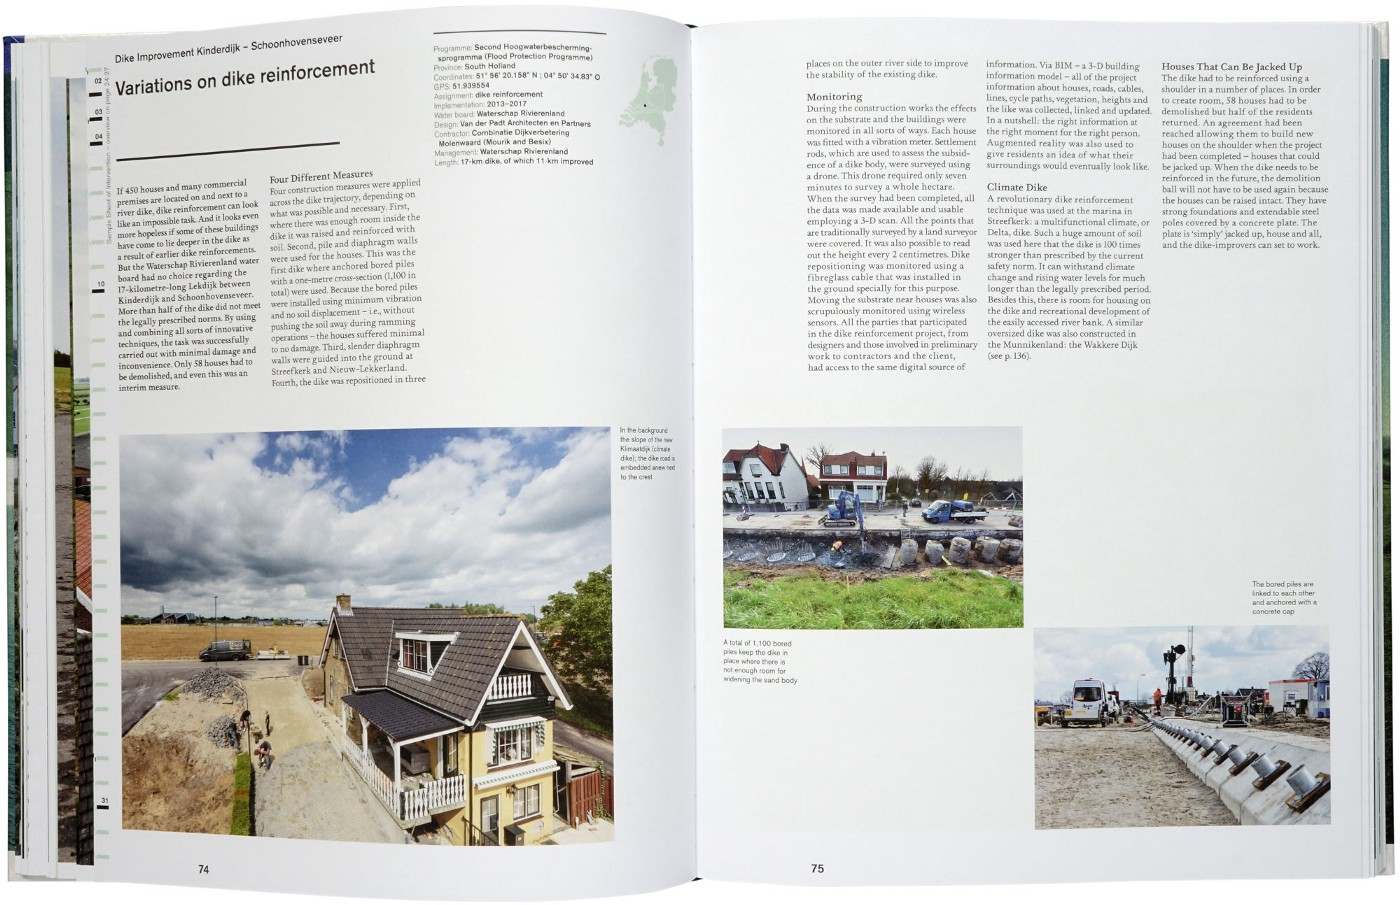 Photo of an inside double page spread, uses a 3 column layout with images running along the bottom of the page